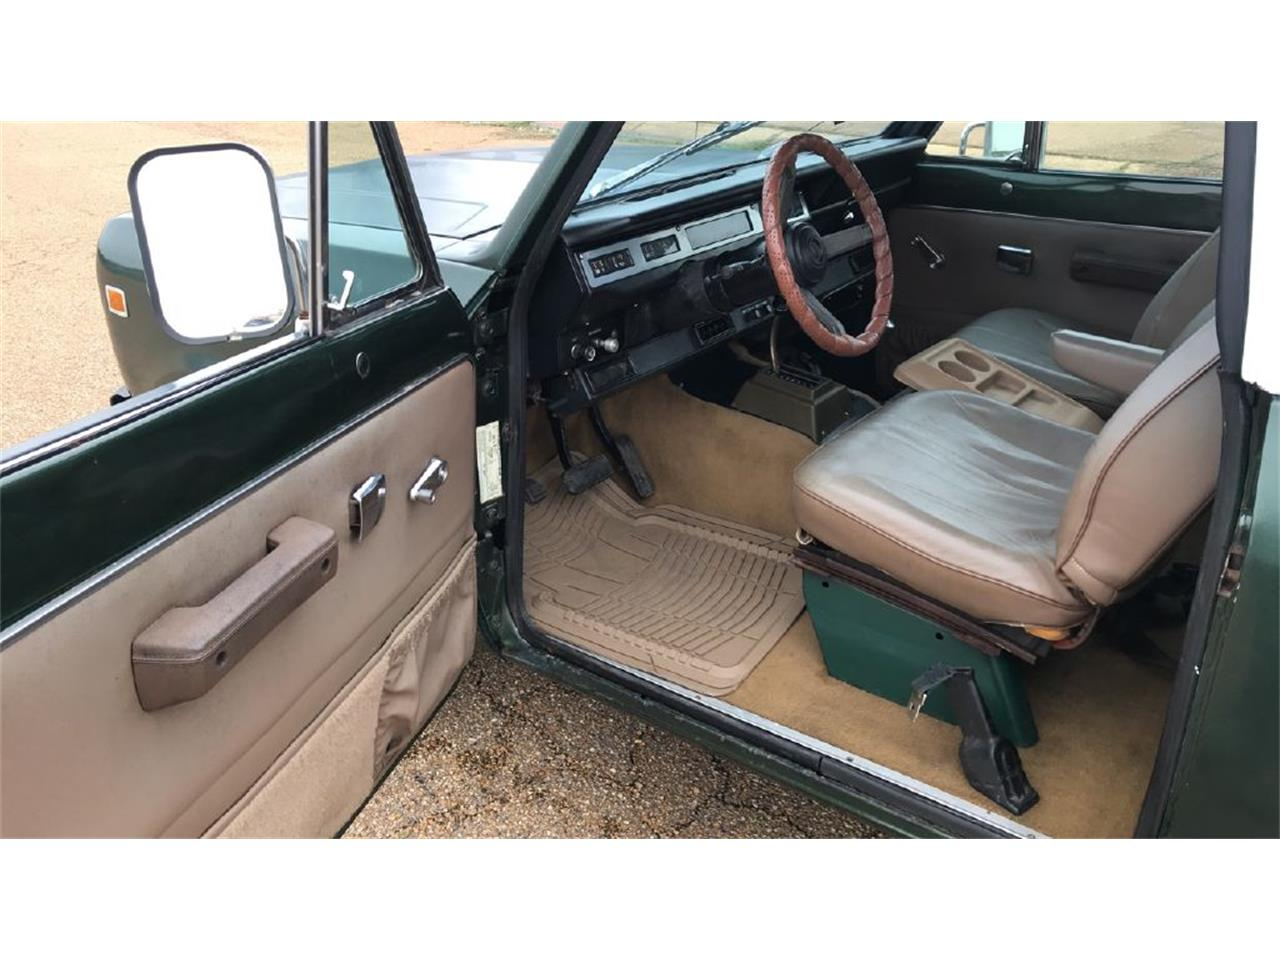 Large Picture of 1980 International Terra located in Mississippi - $17,500.00 Offered by Cotton Warehouse Classic Cars - PX5U